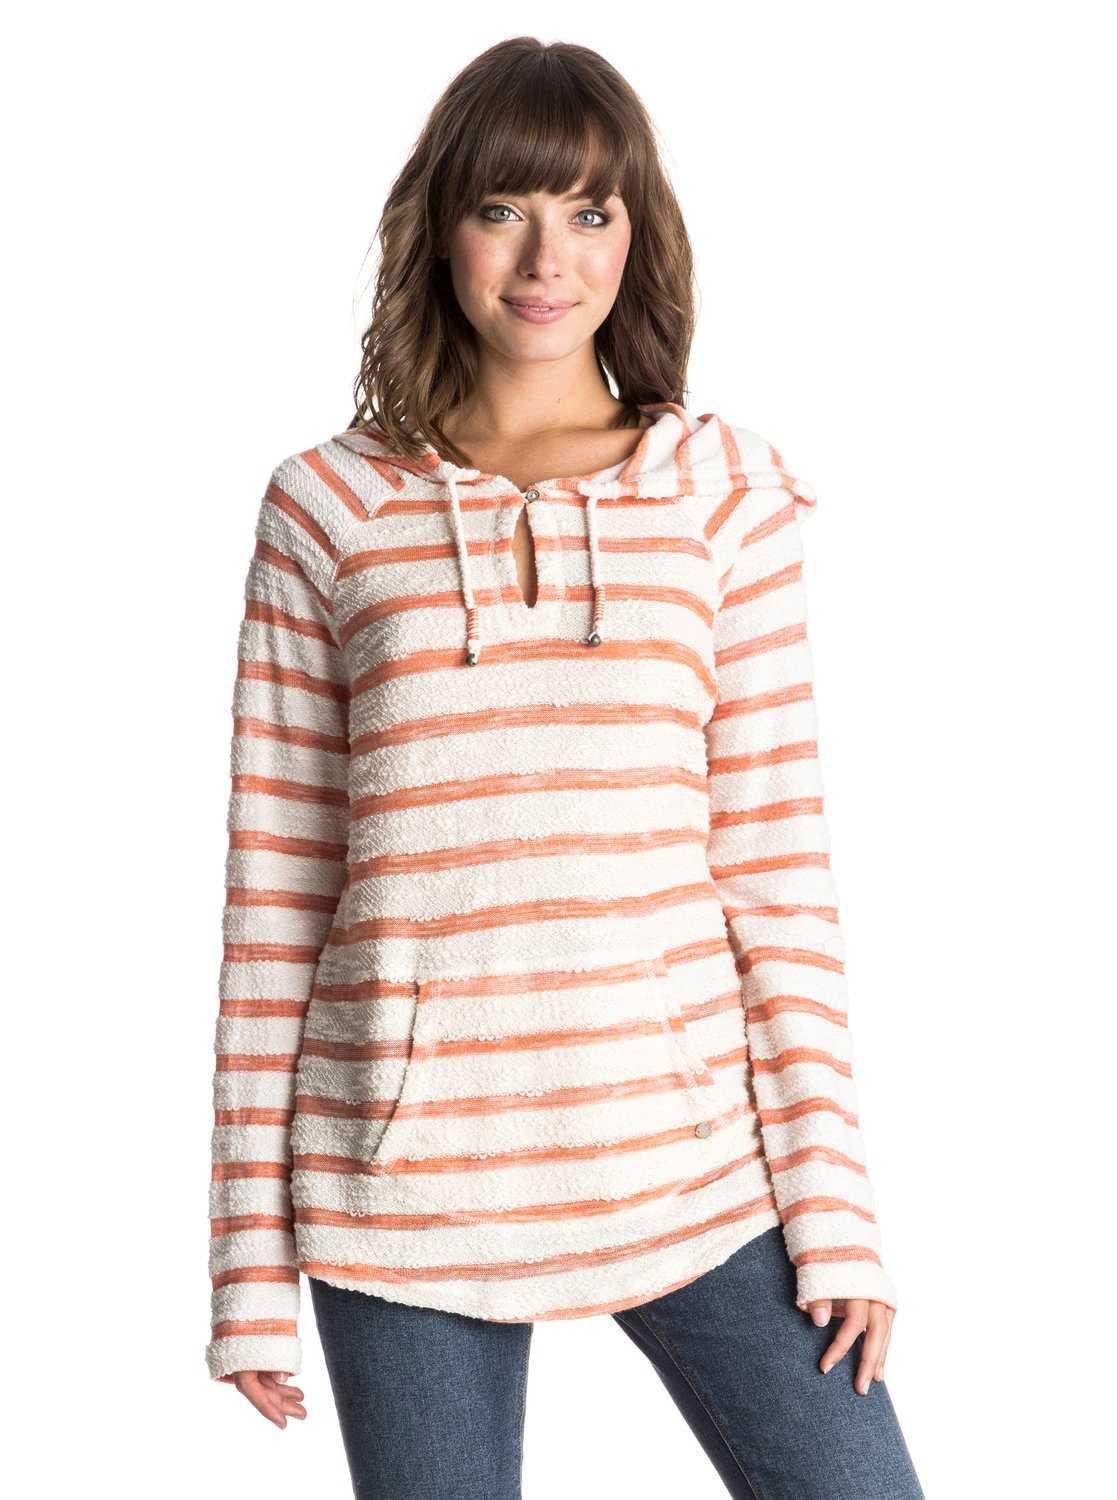 Adelaide Poncho Pull Over Hoodie